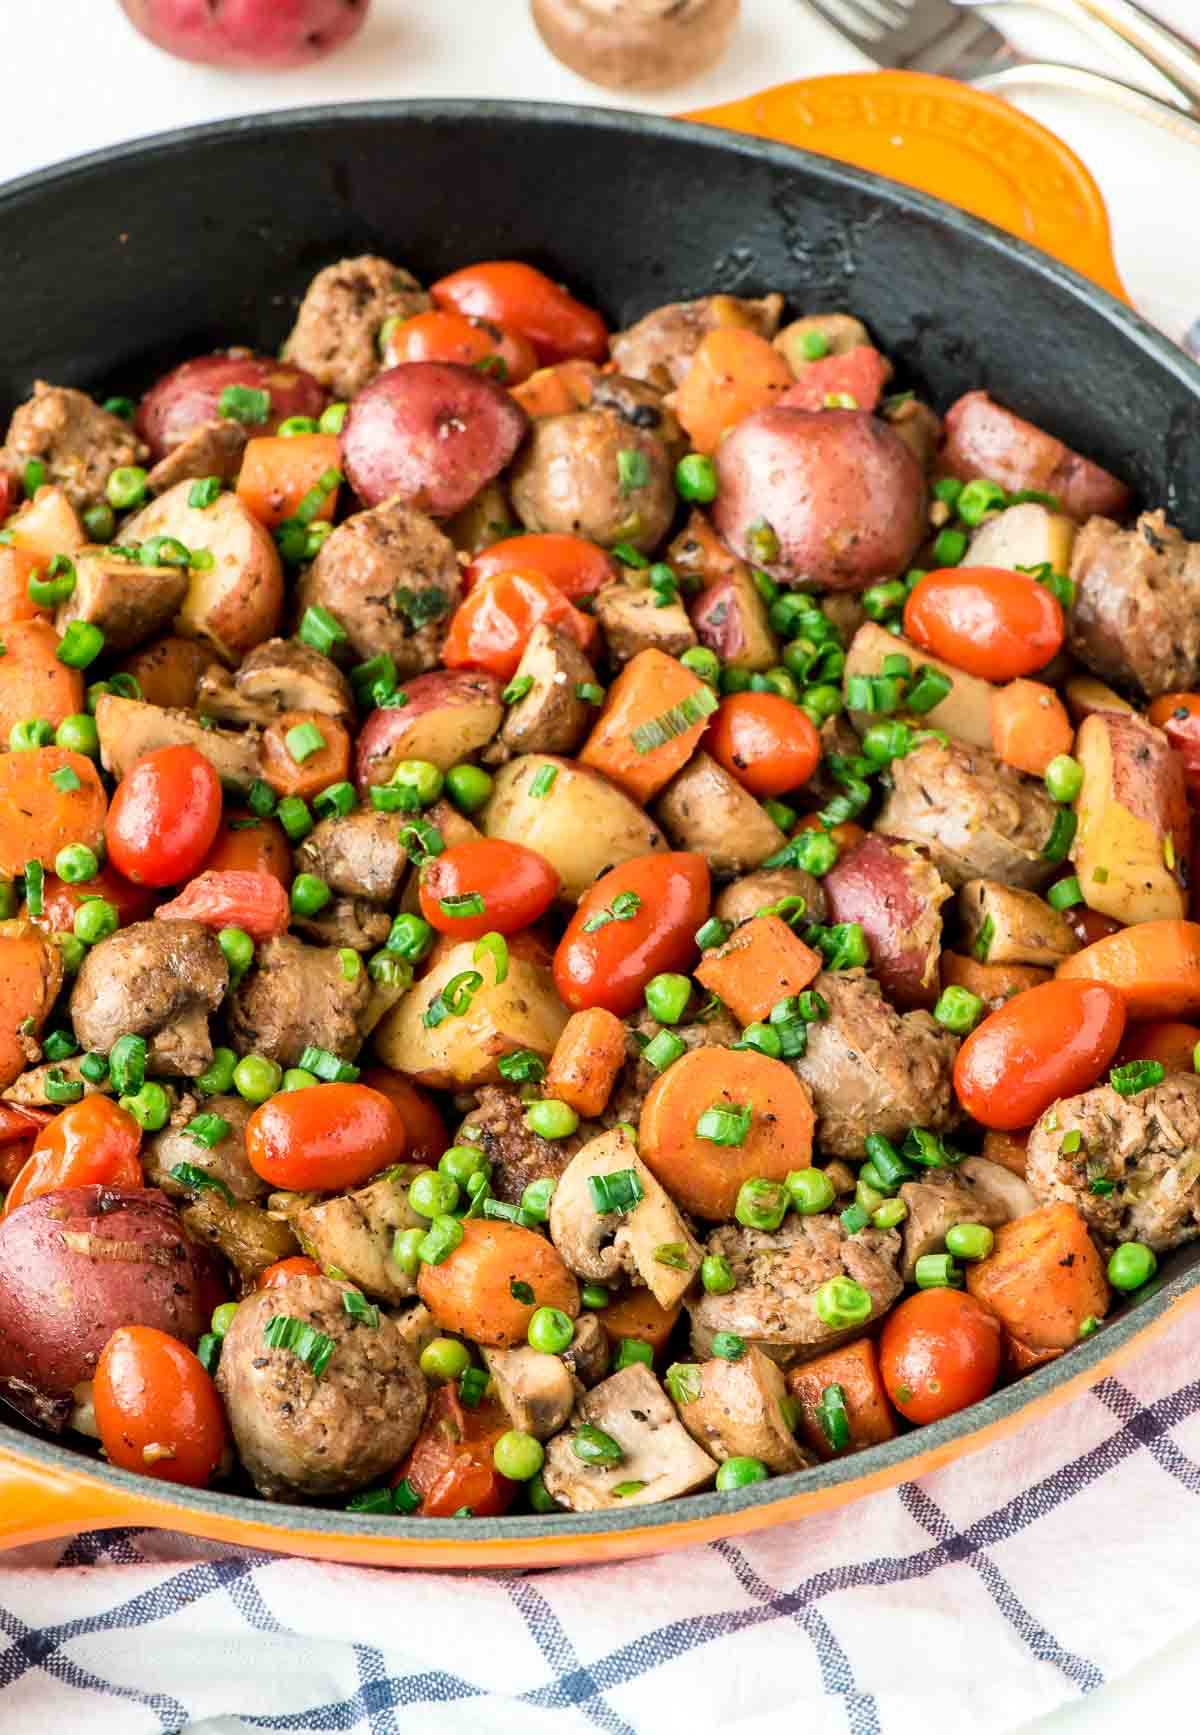 Italian sausage skillet with vegetables and potatoes an easy on pan italian sausage skillet filled with fresh veggies smoky sausage and forumfinder Images